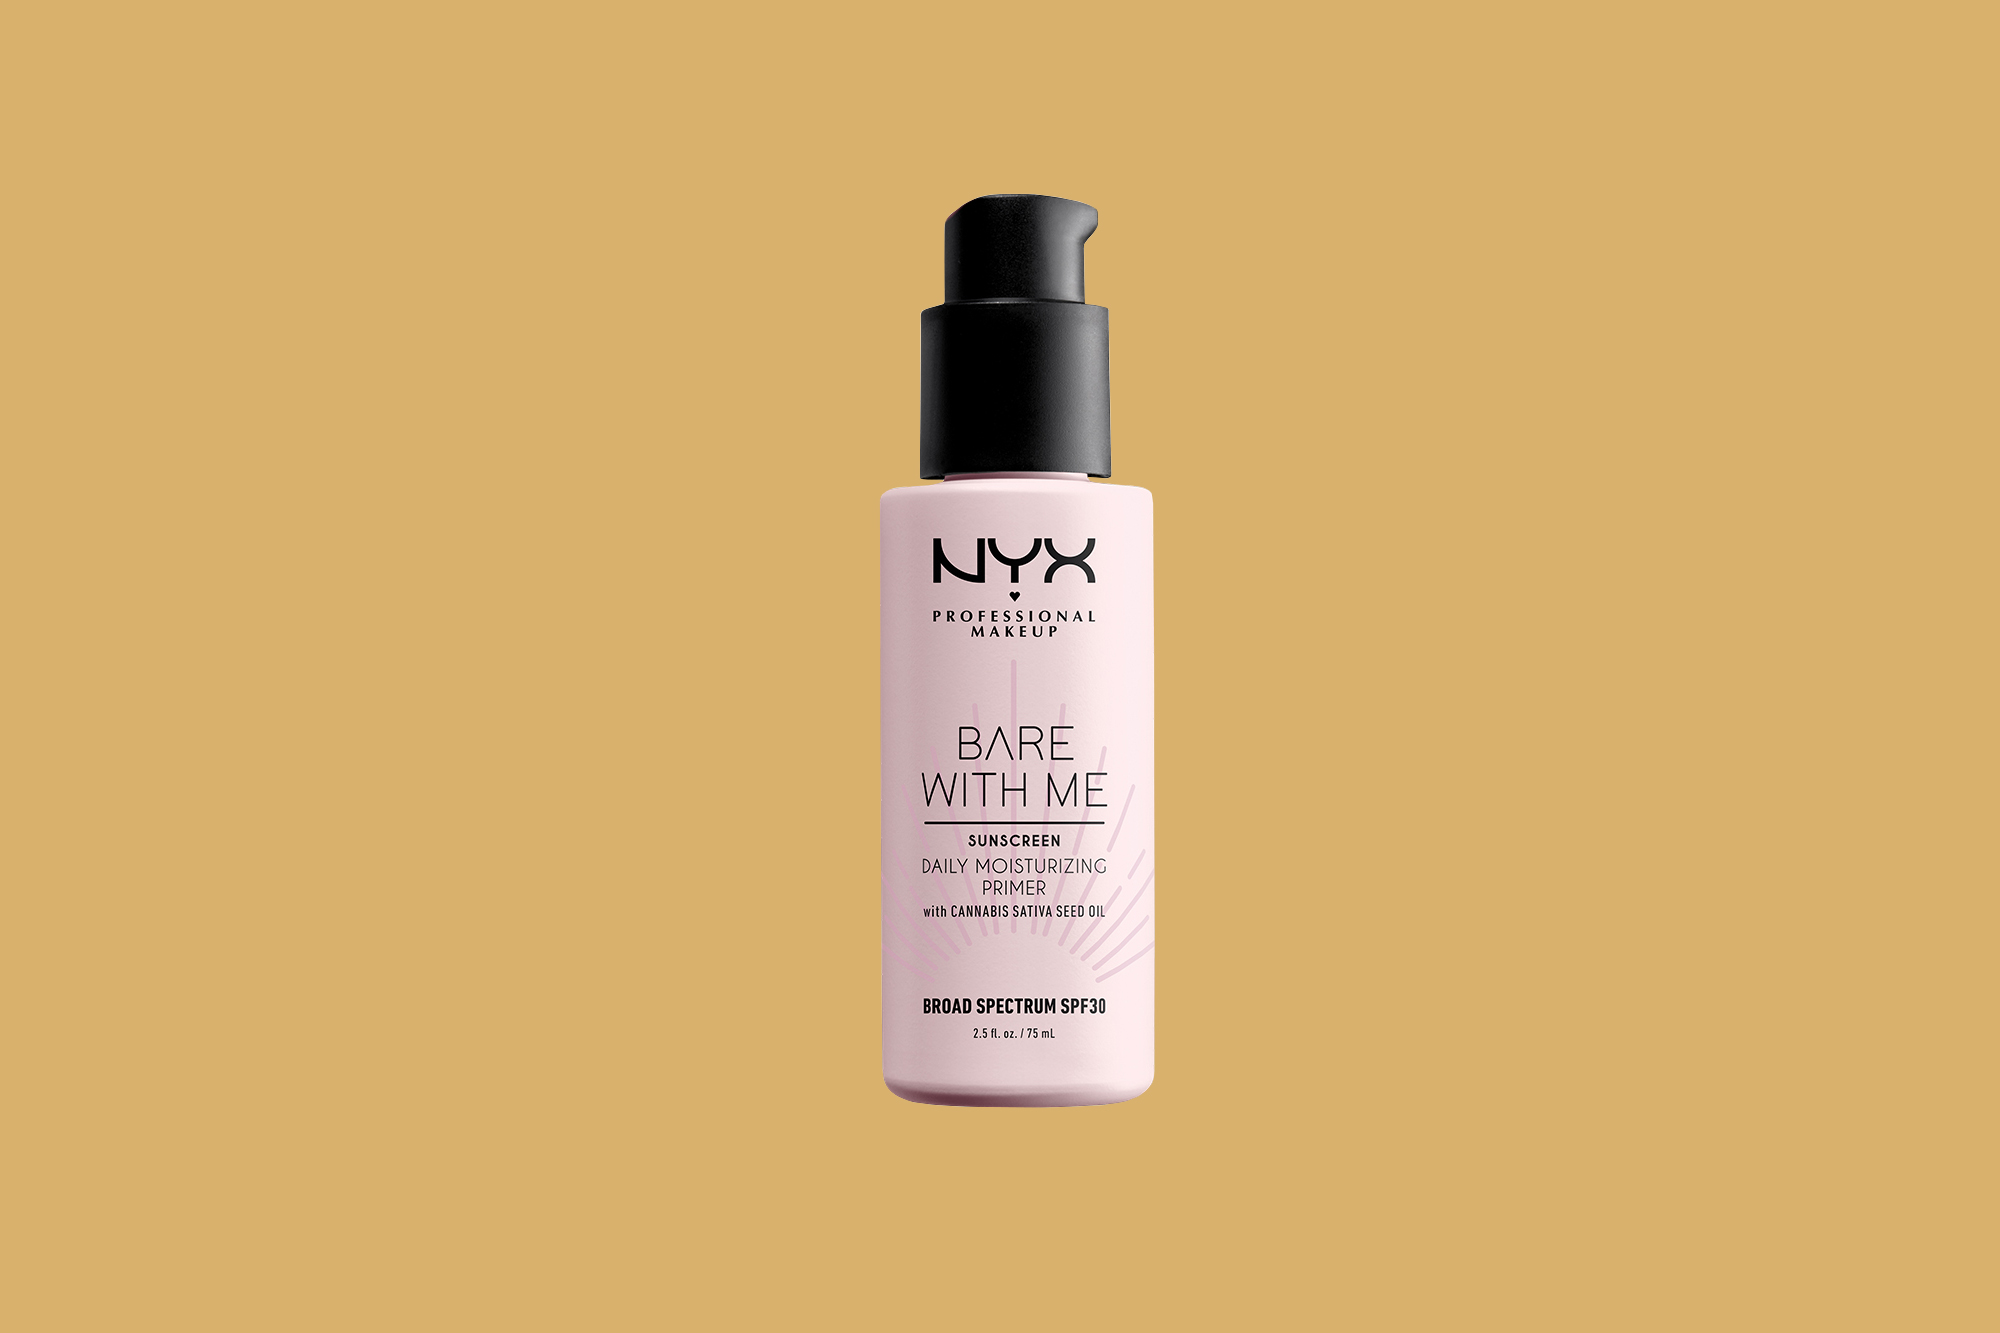 nyx bare with me daily moisturizing primer